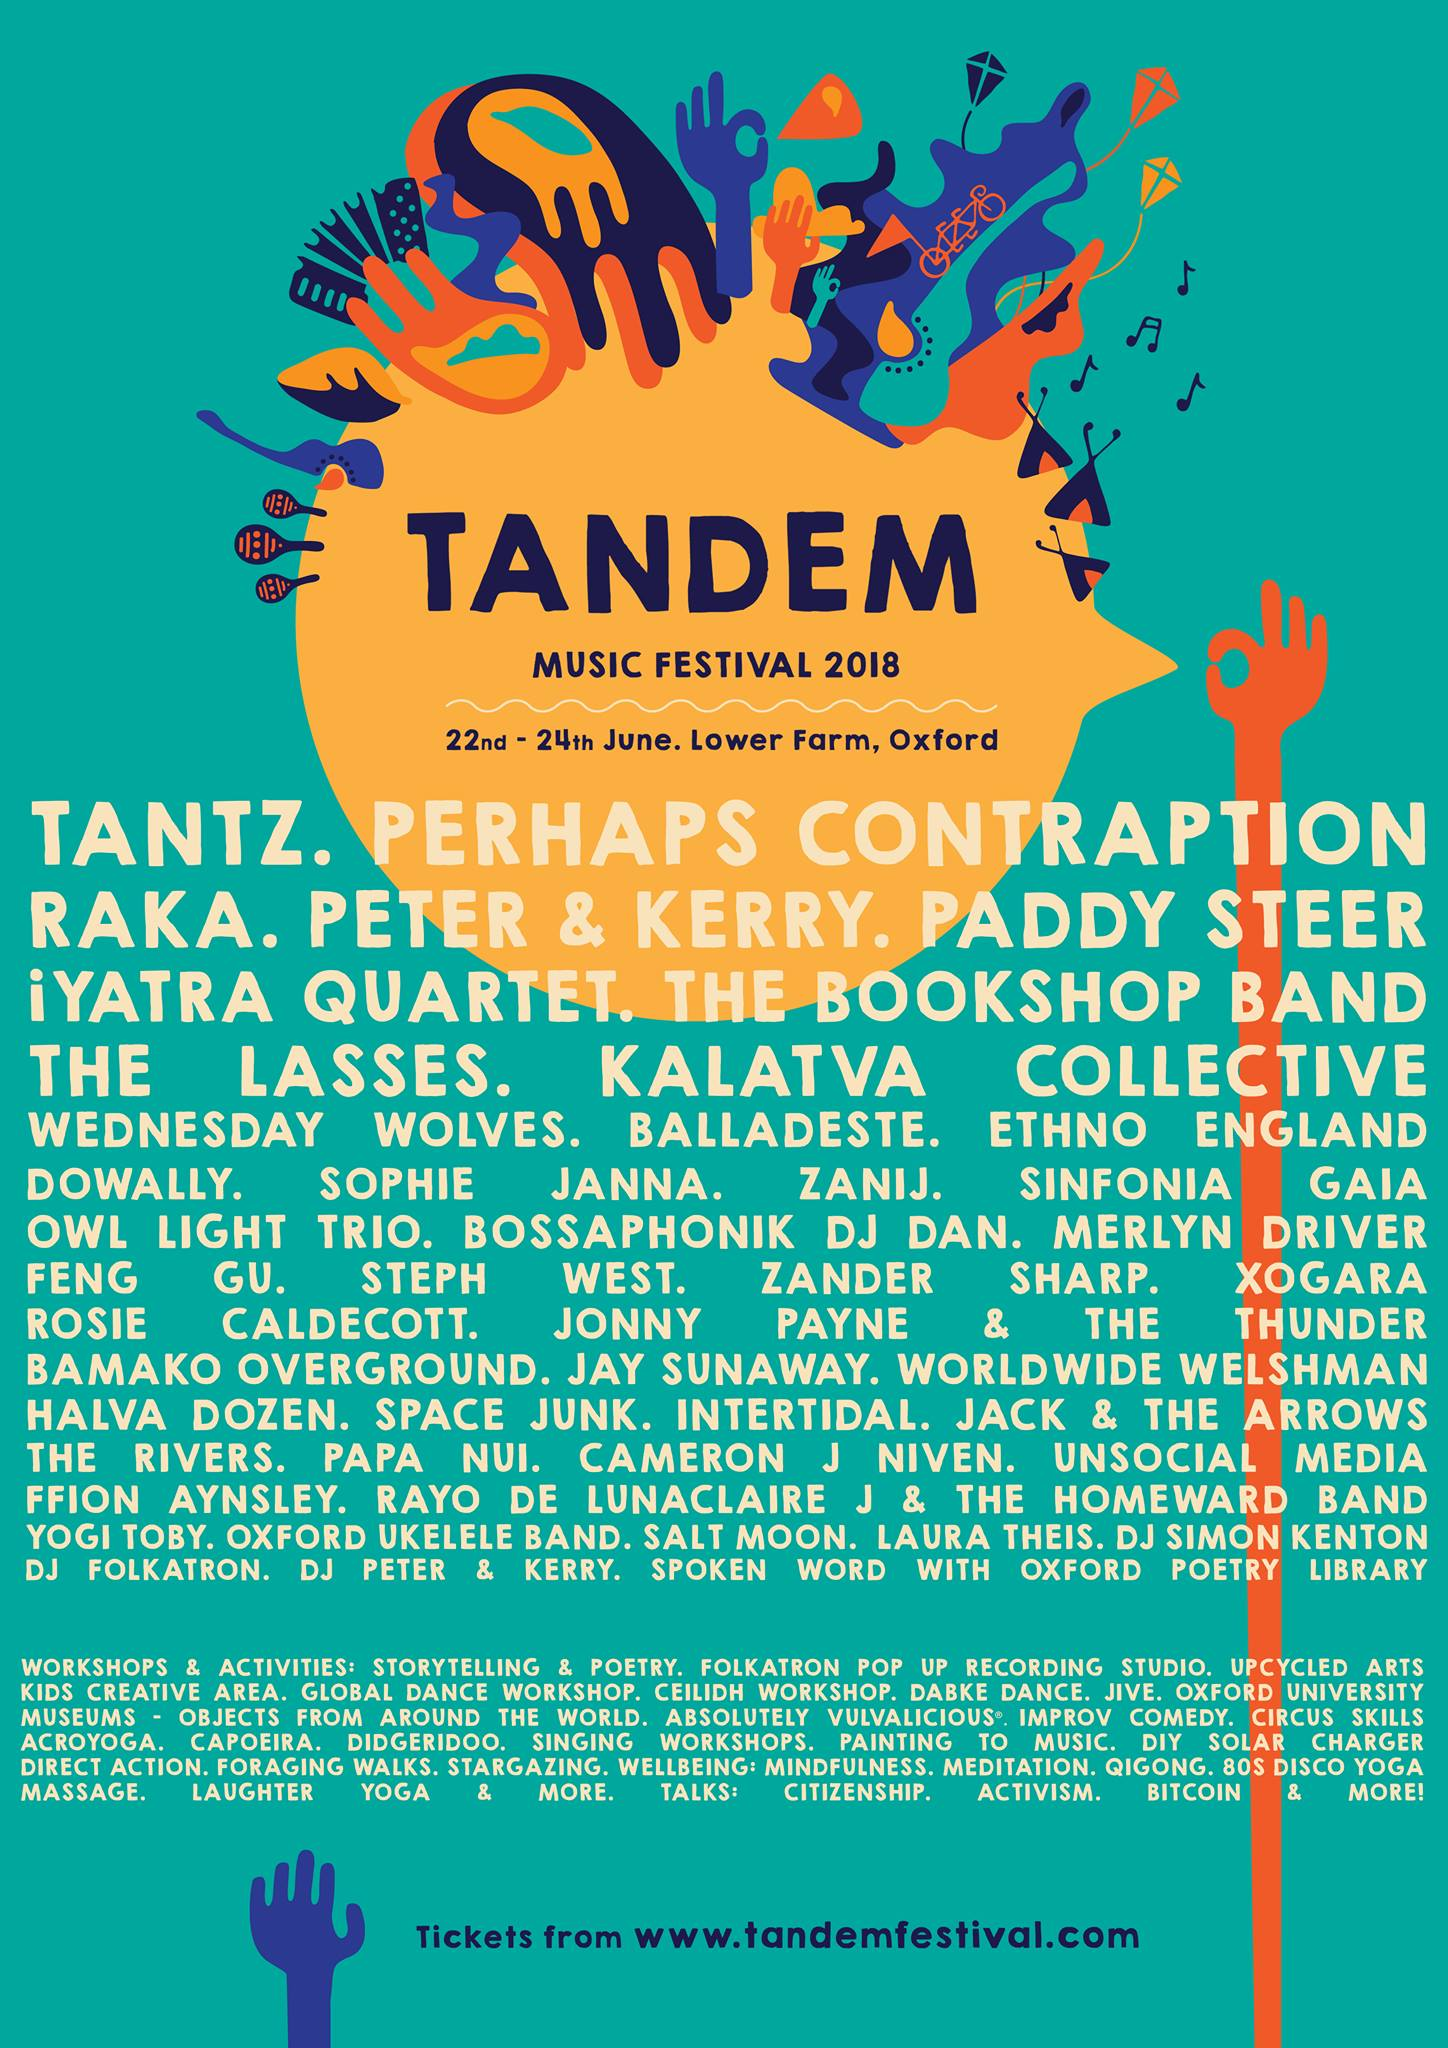 TANDEM FESTIVAL 2018 @ Lower Farm Oxford